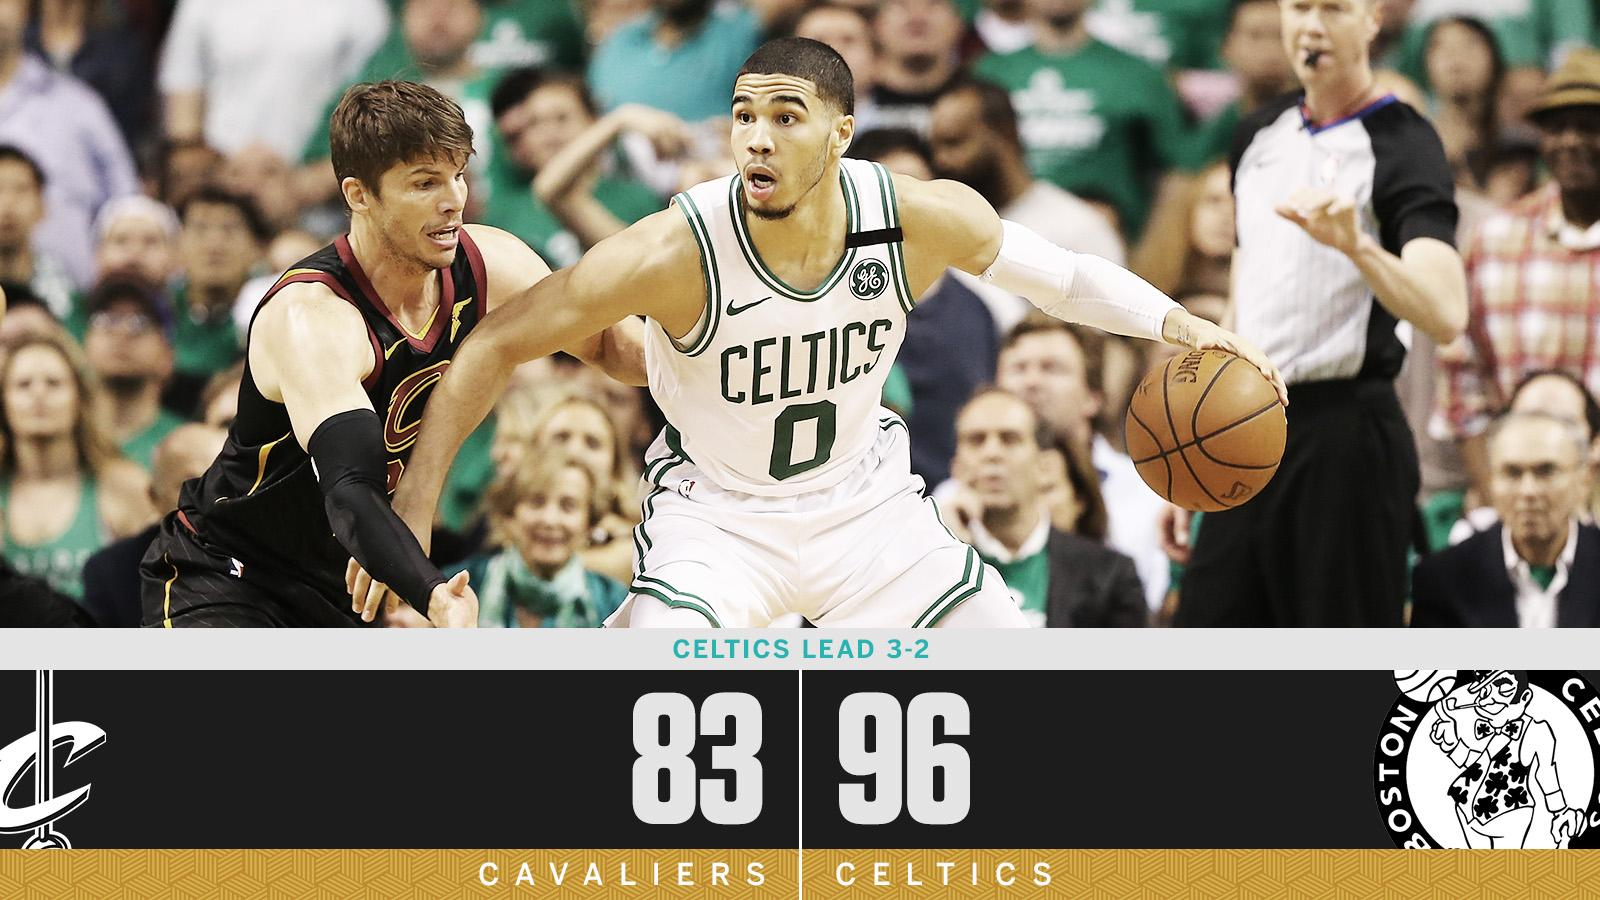 ONE WIN AWAY from the NBA Finals ☘️ https://t.co/2mINYo5L6R